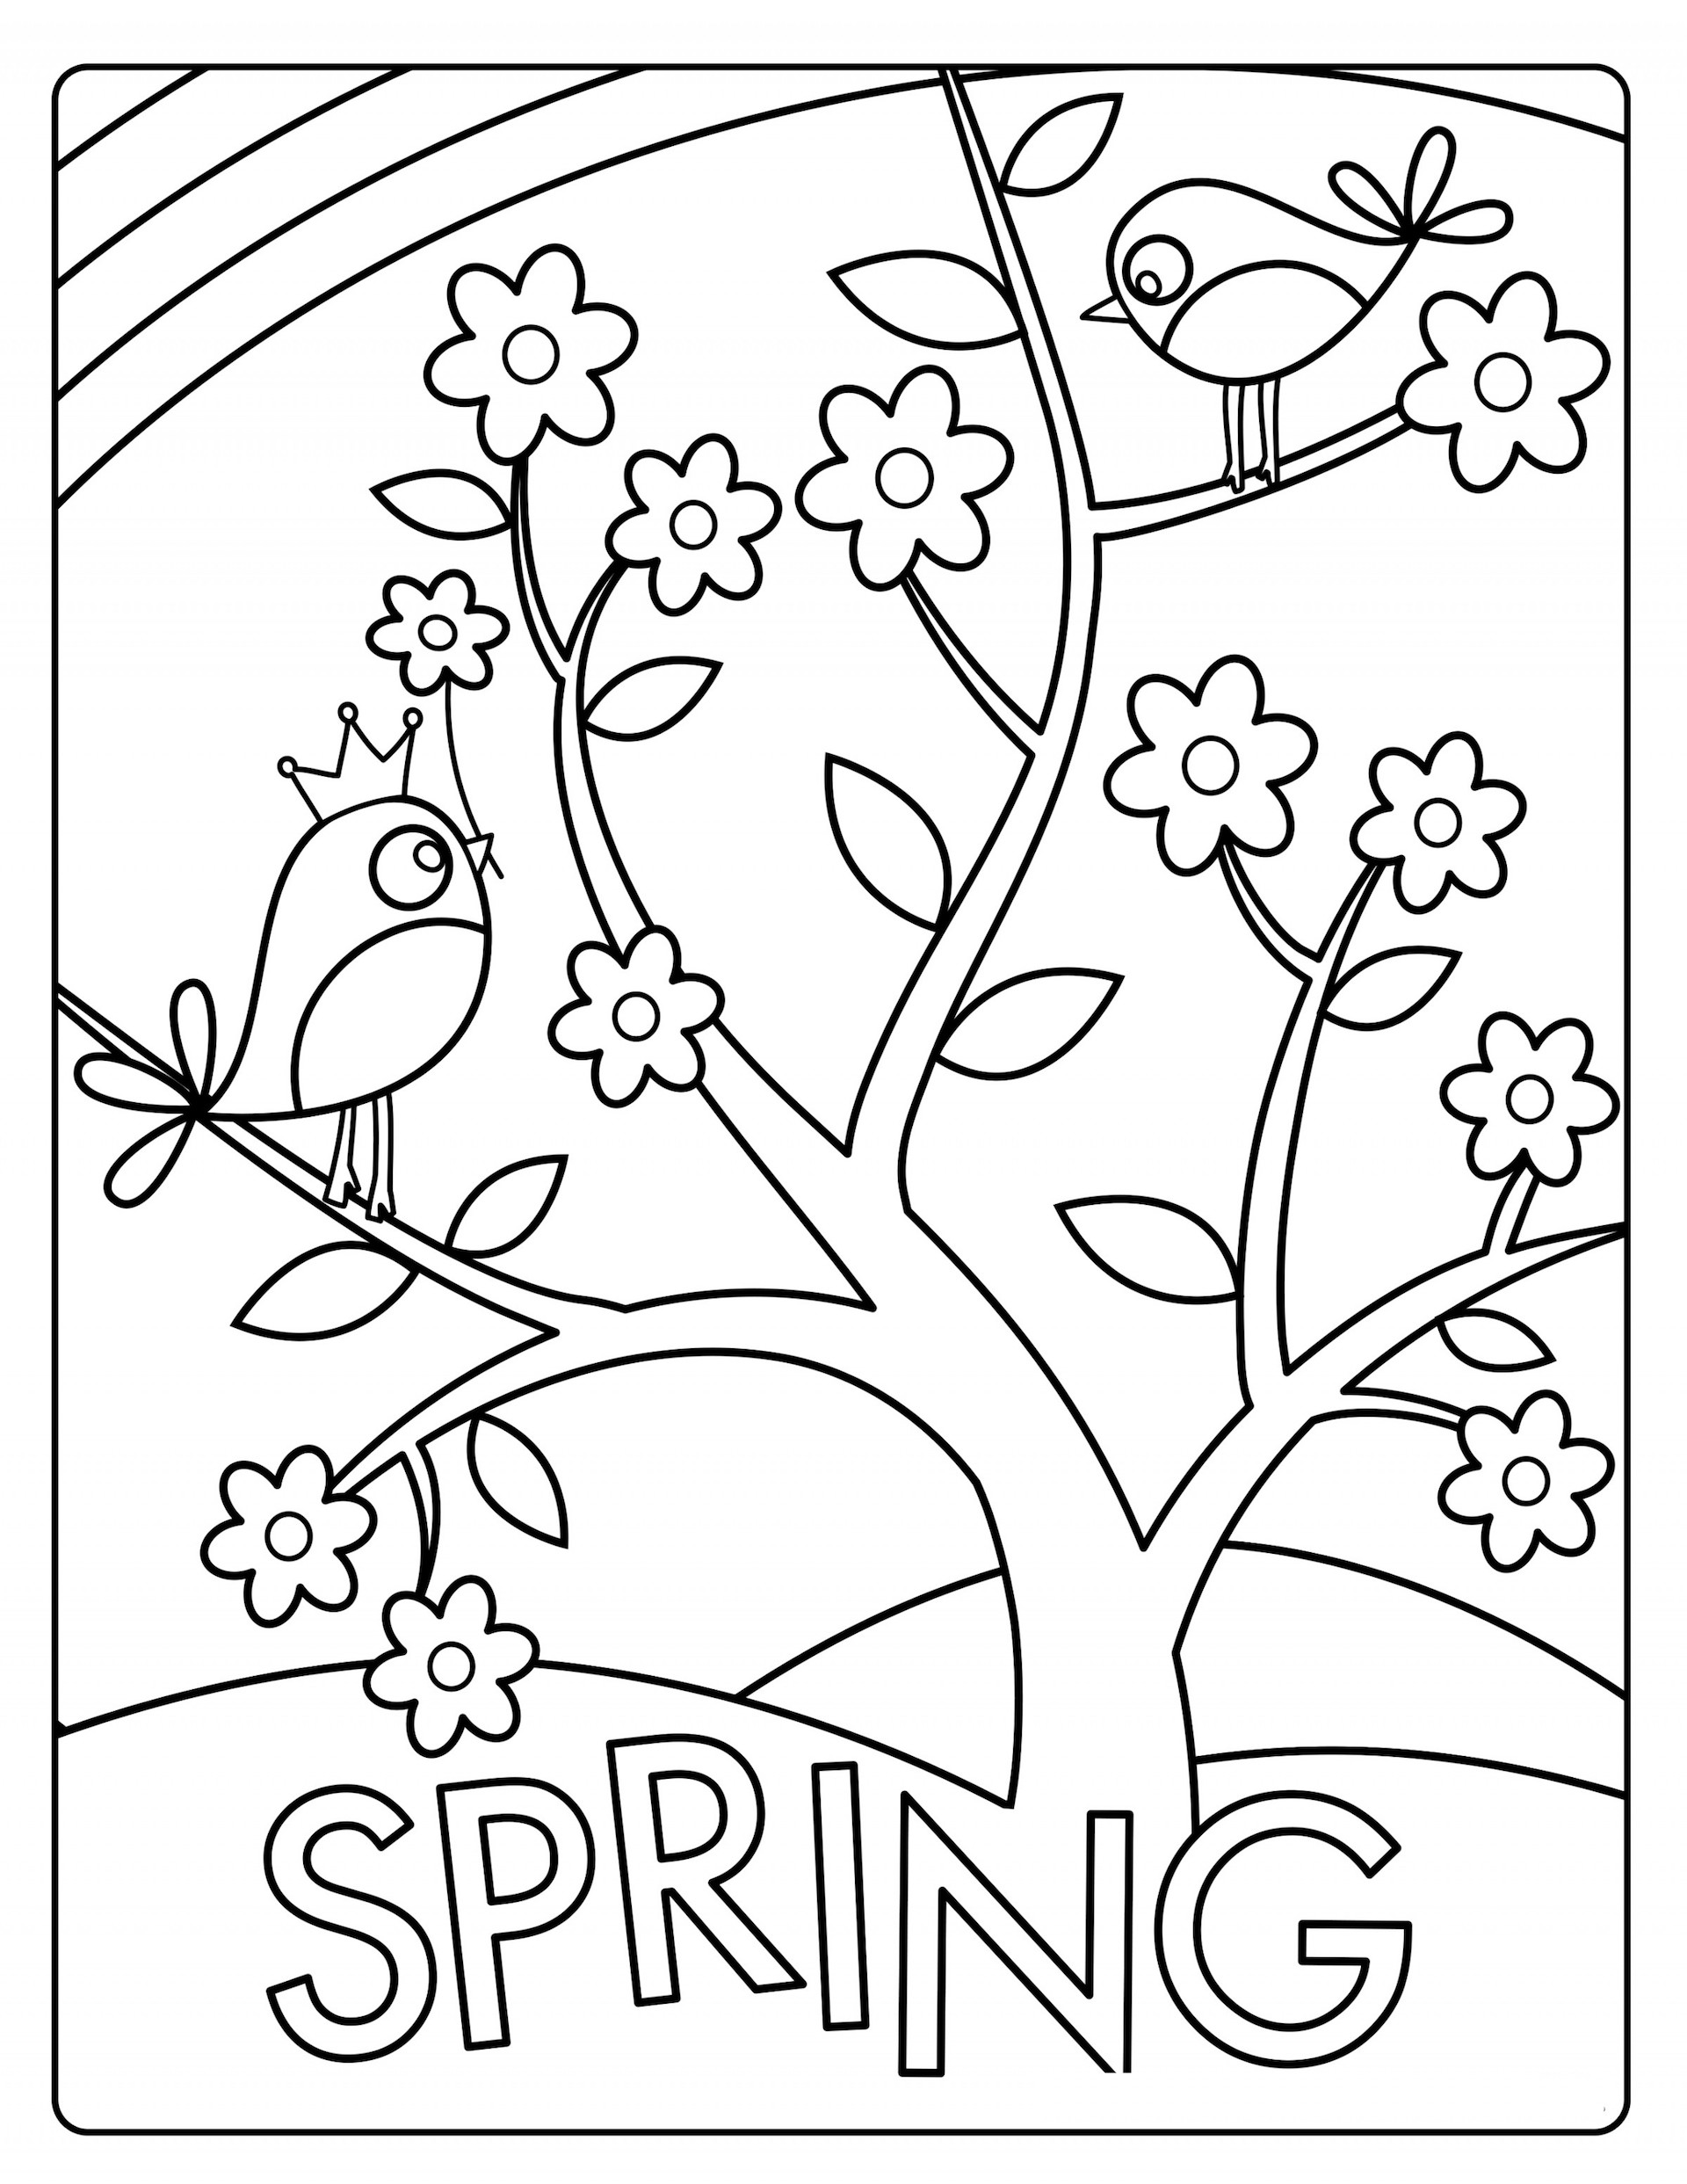 Spring Coloring Pages And Dozens More Free Printable ...